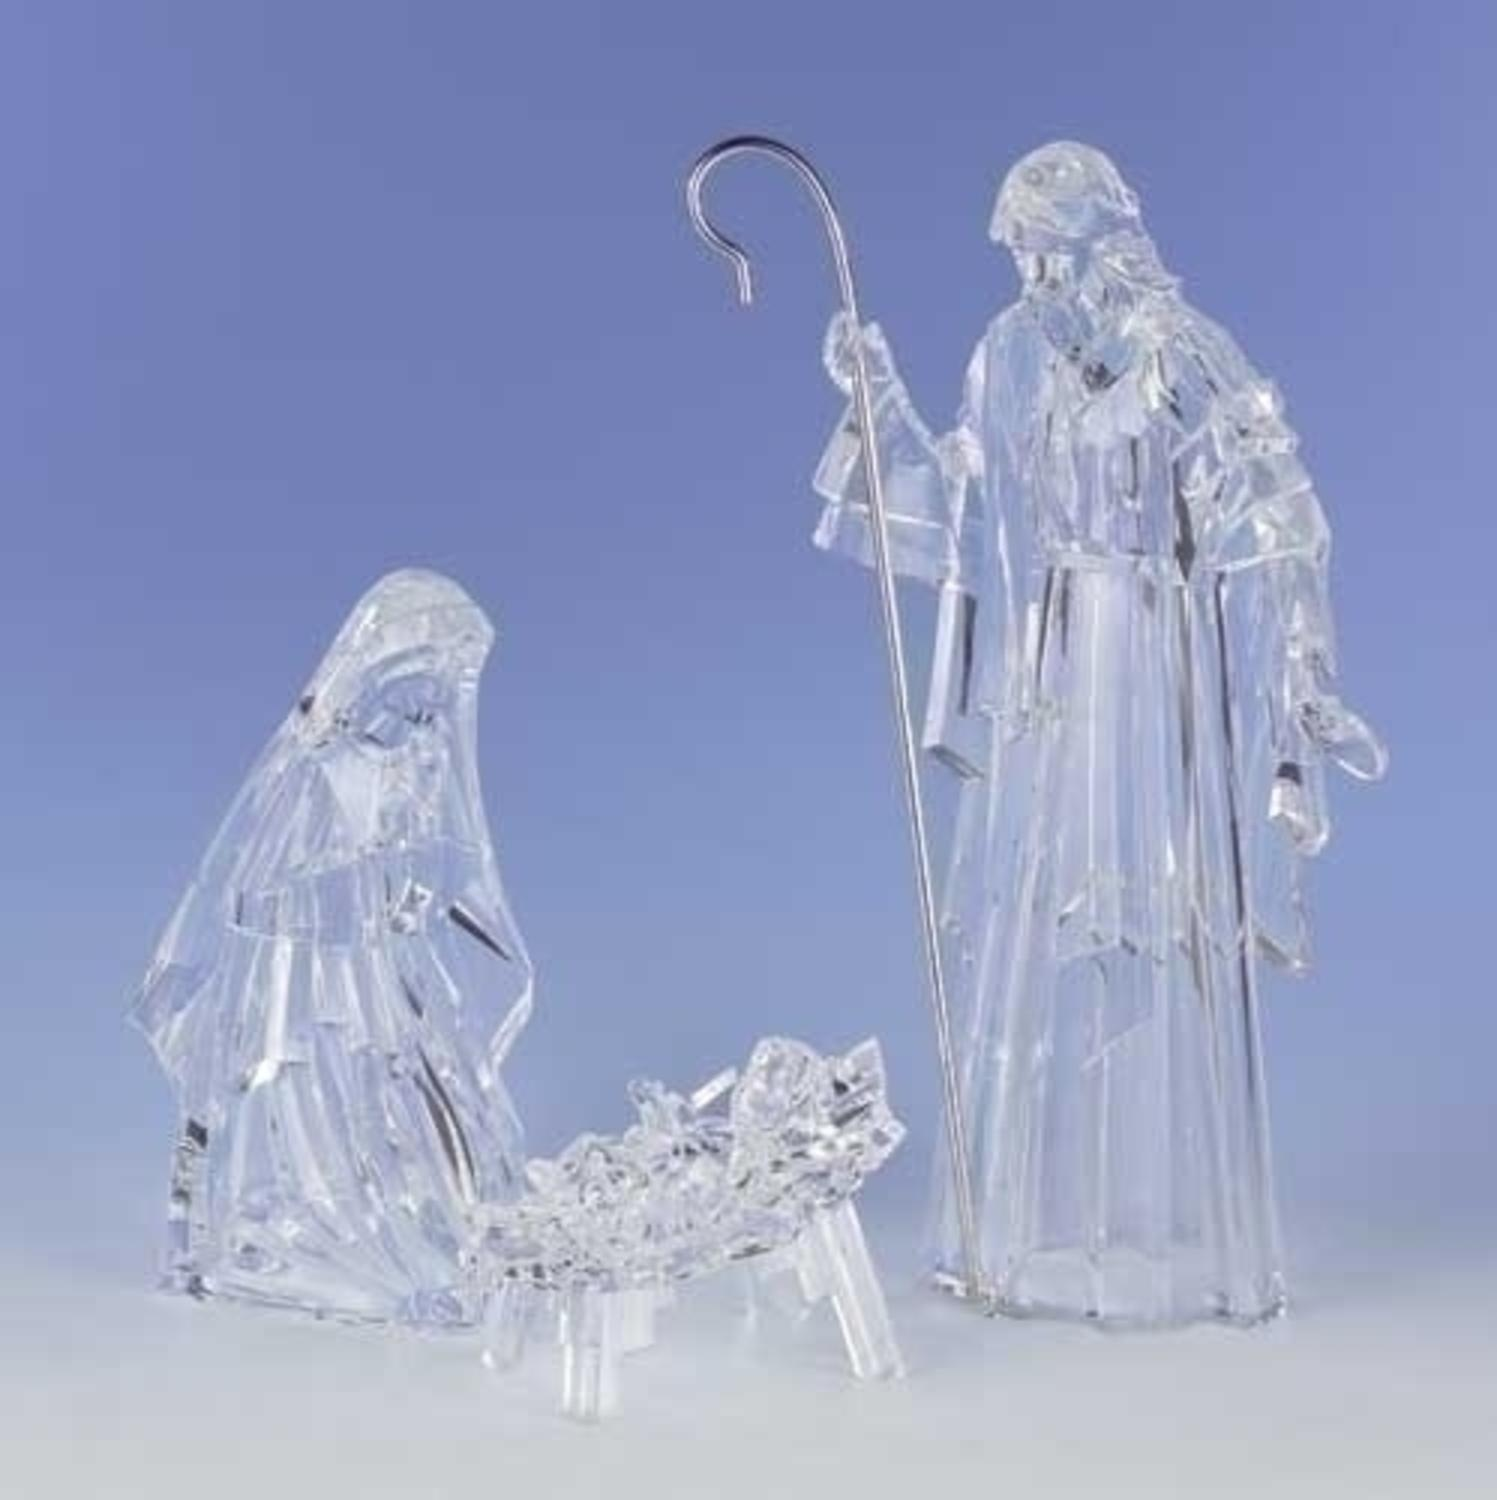 3-Piece Icy Crystal Religious Holy Family Christmas Nativity Figure Set